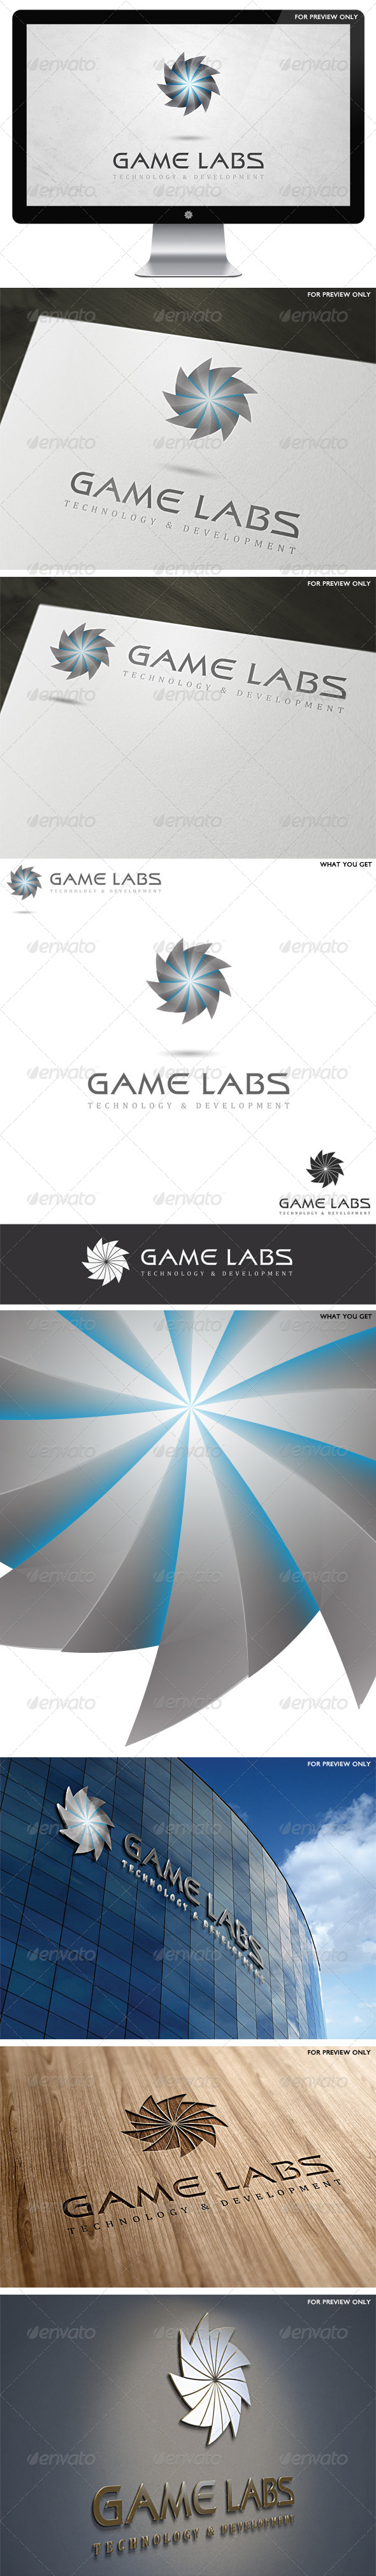 3D Game Labs Logo Template v1